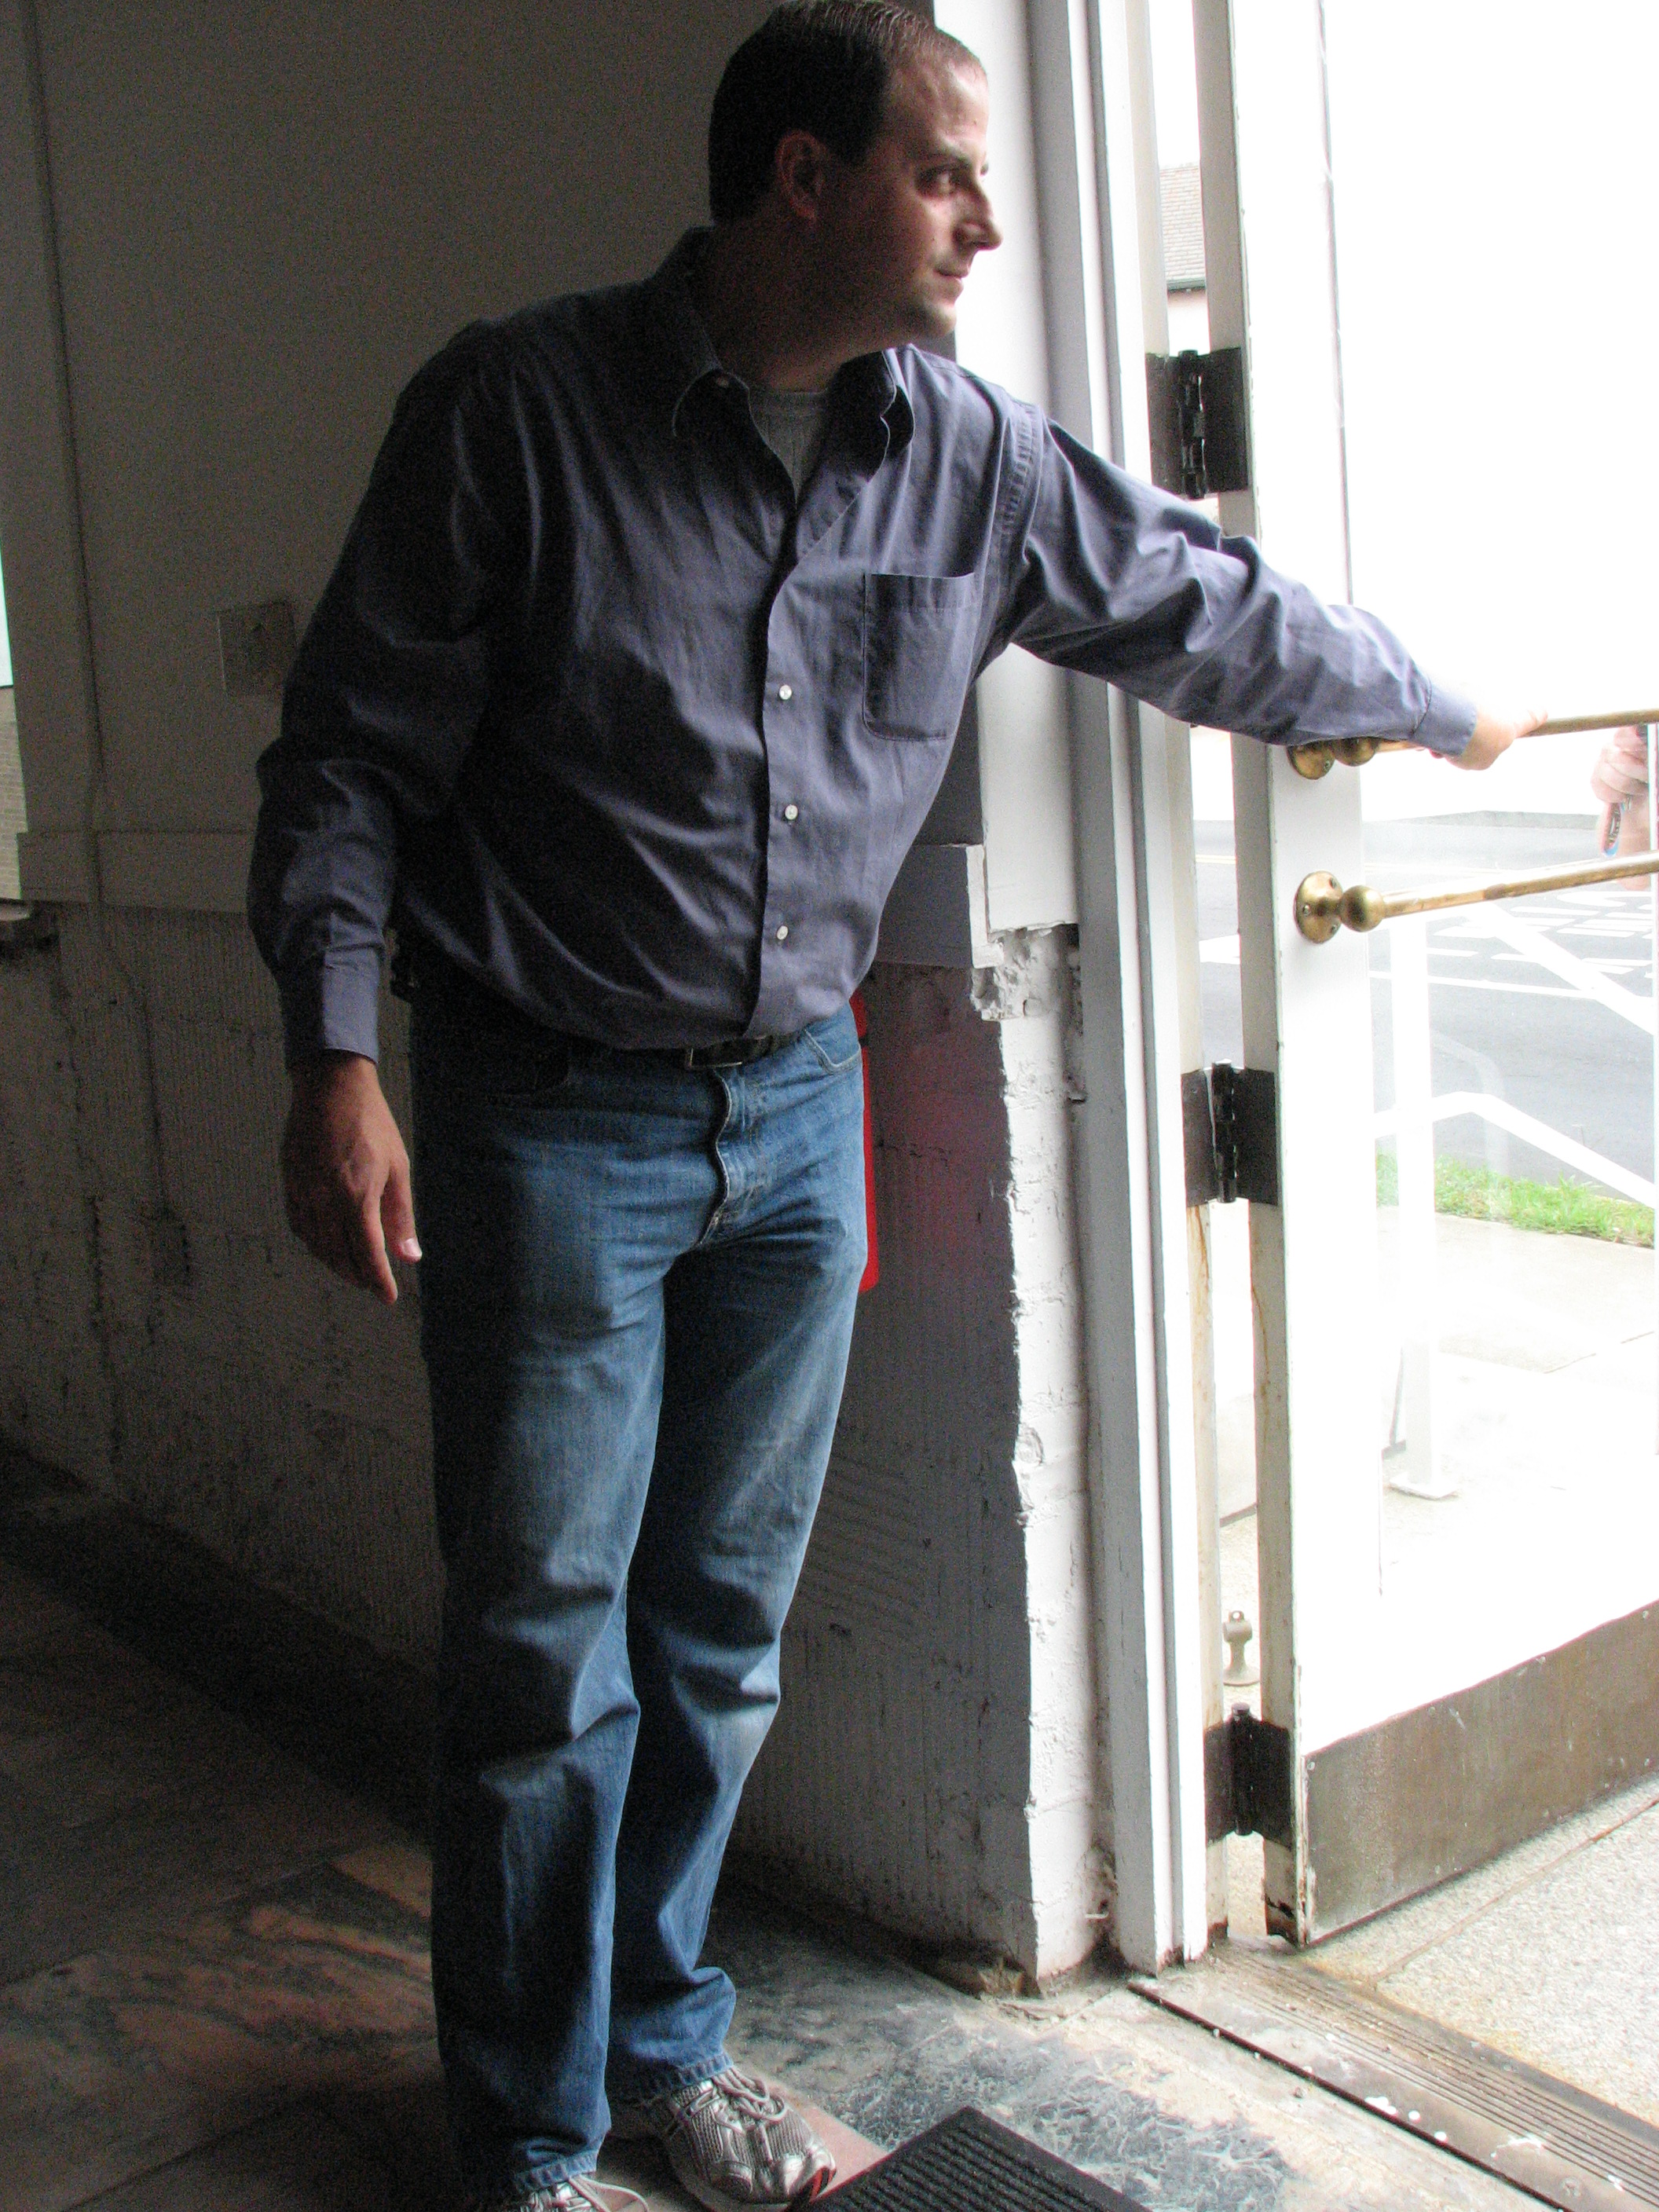 June 14th, 2007, I opened the door to the public for the first time.